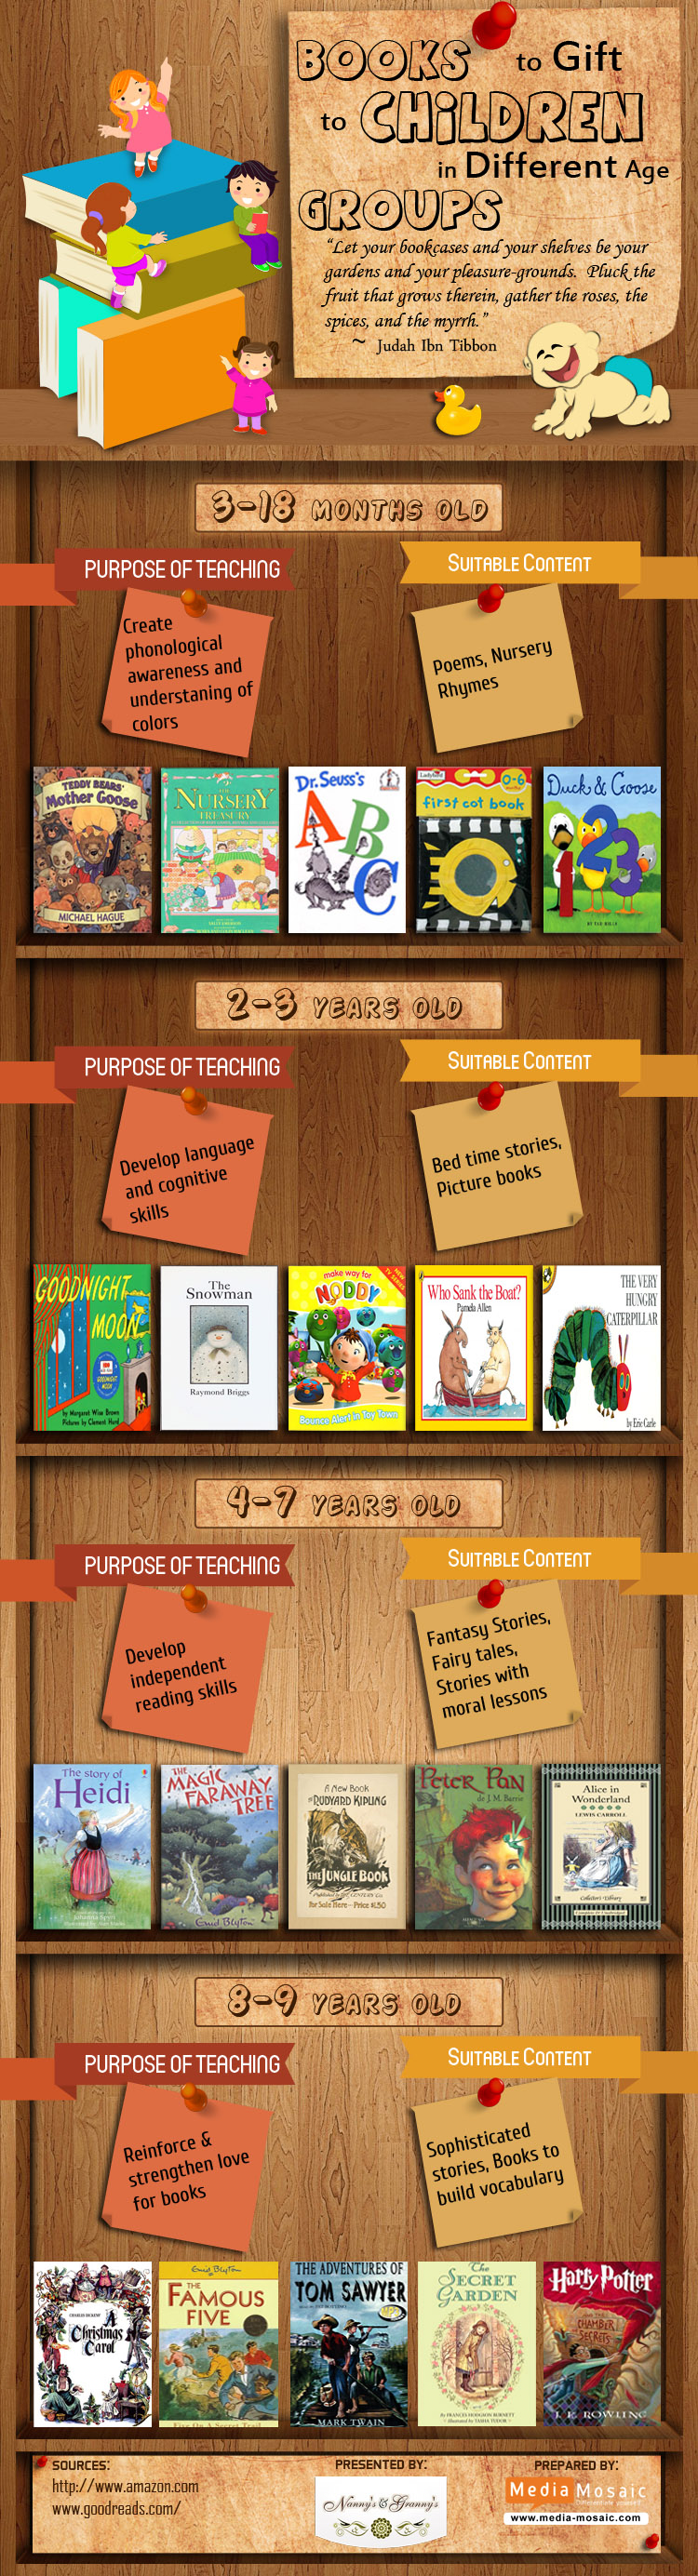 Books-to-gifts-to-children-in-different-age-groups-infographic